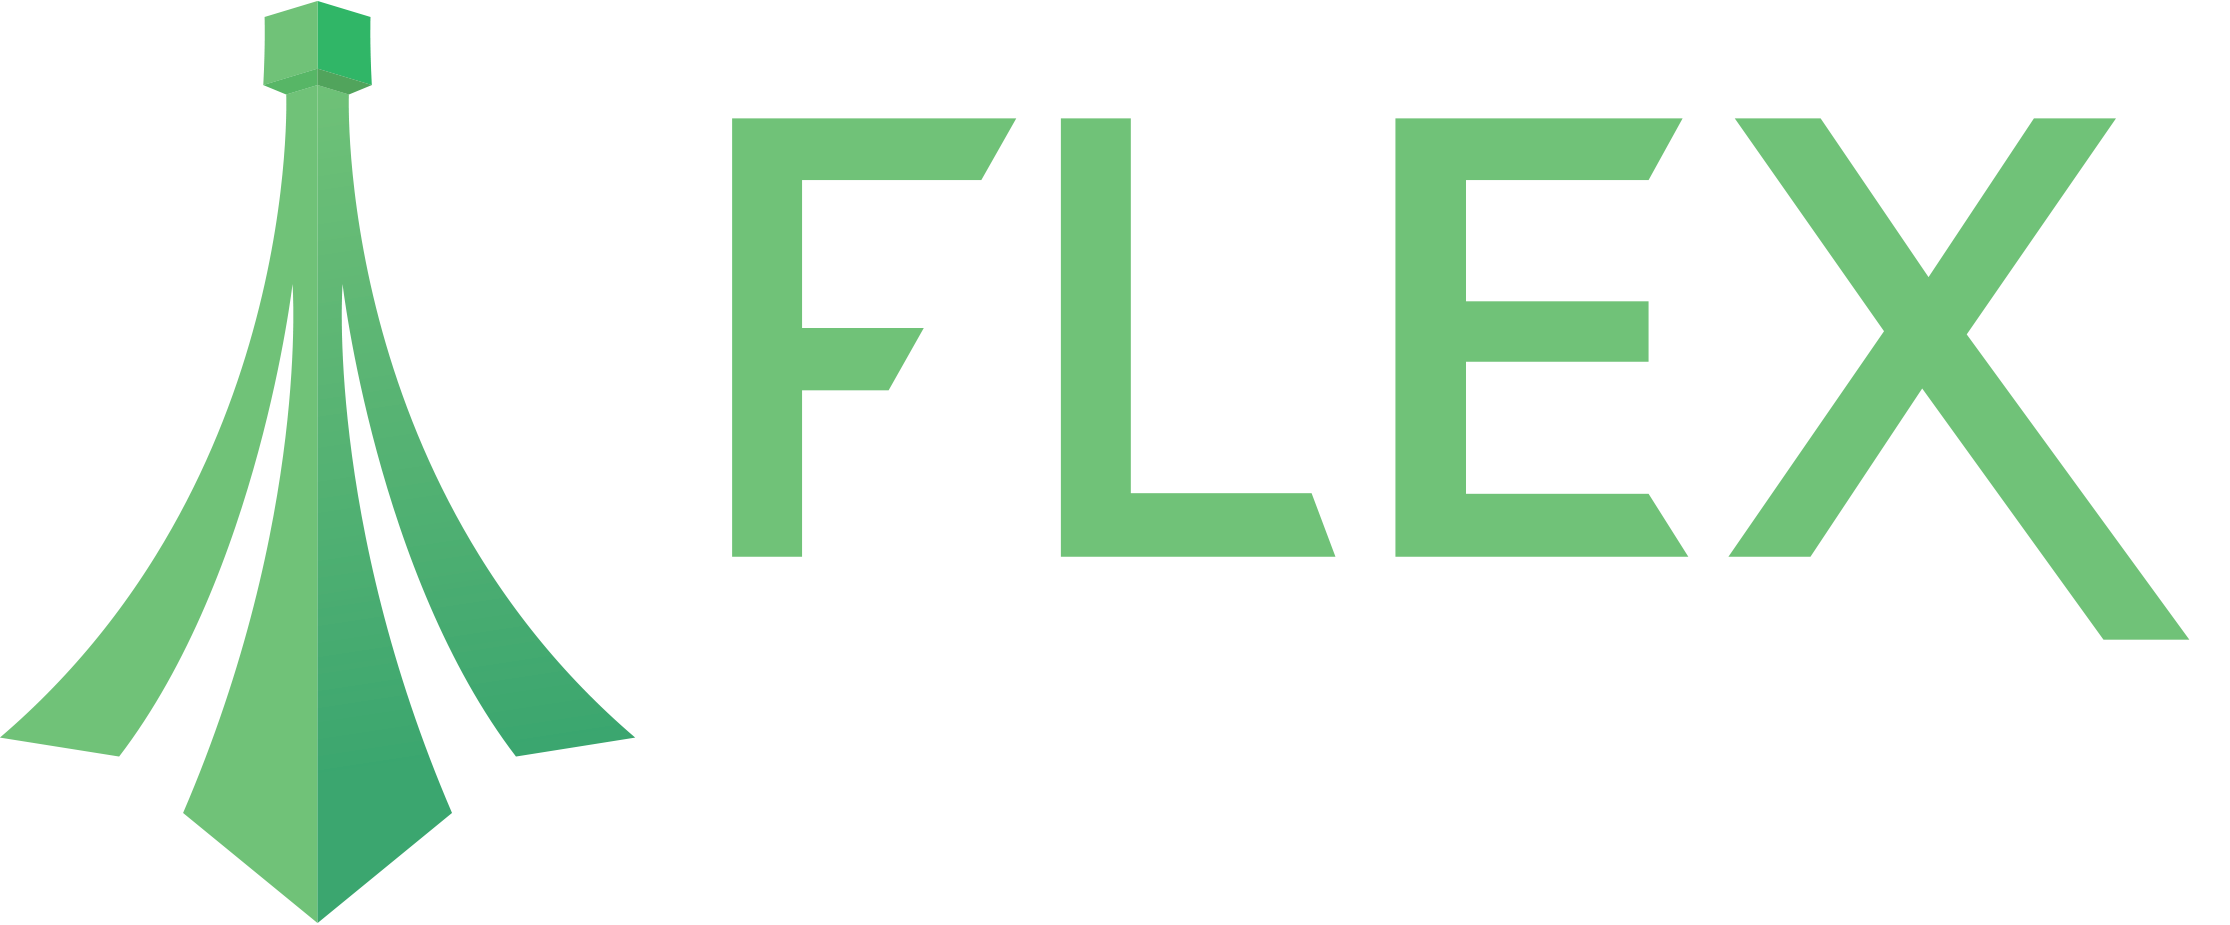 Flex Deployment Solutions